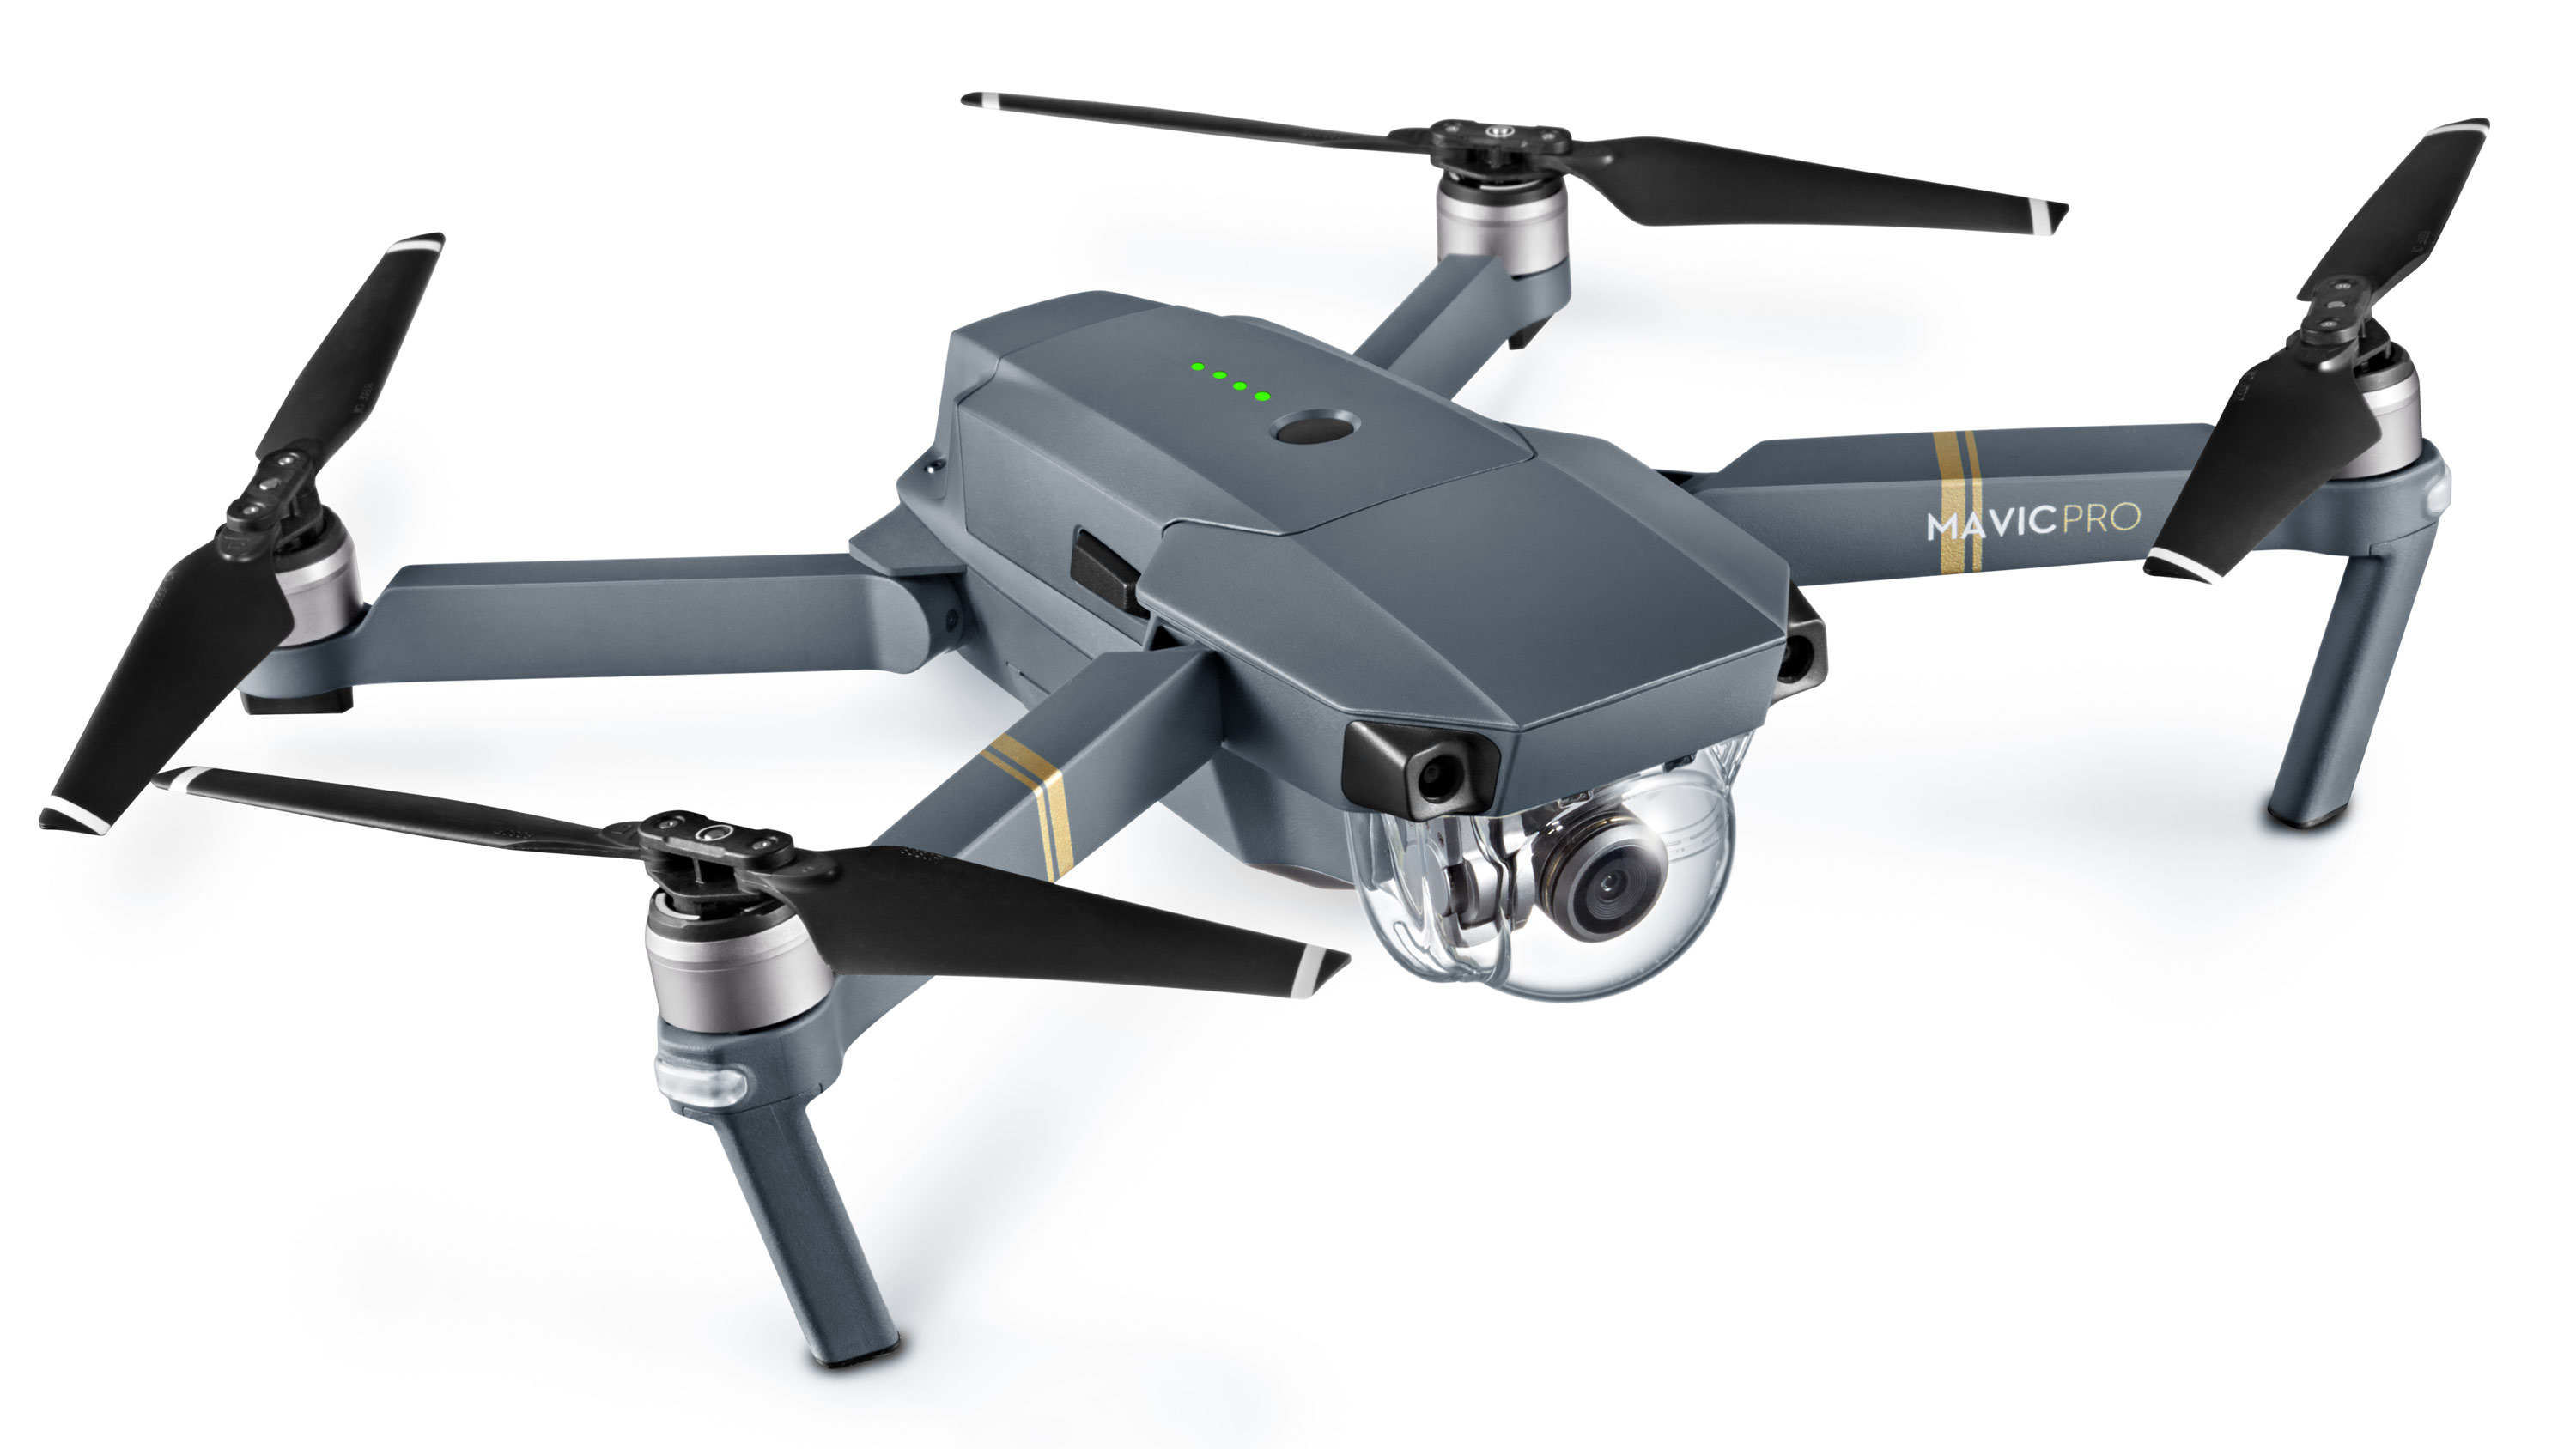 rc helicopter camera video with Dji Mavic Pro Announced Read All About The Gopro Karma Killer Here on 162228847454 also Dji Mavic Pro Announced Read All About The Gopro Karma Killer Here as well Attachment furthermore Walkera Devo 12e 12 Channel 2 4ghz Digital Radio System White together with T755680p19.